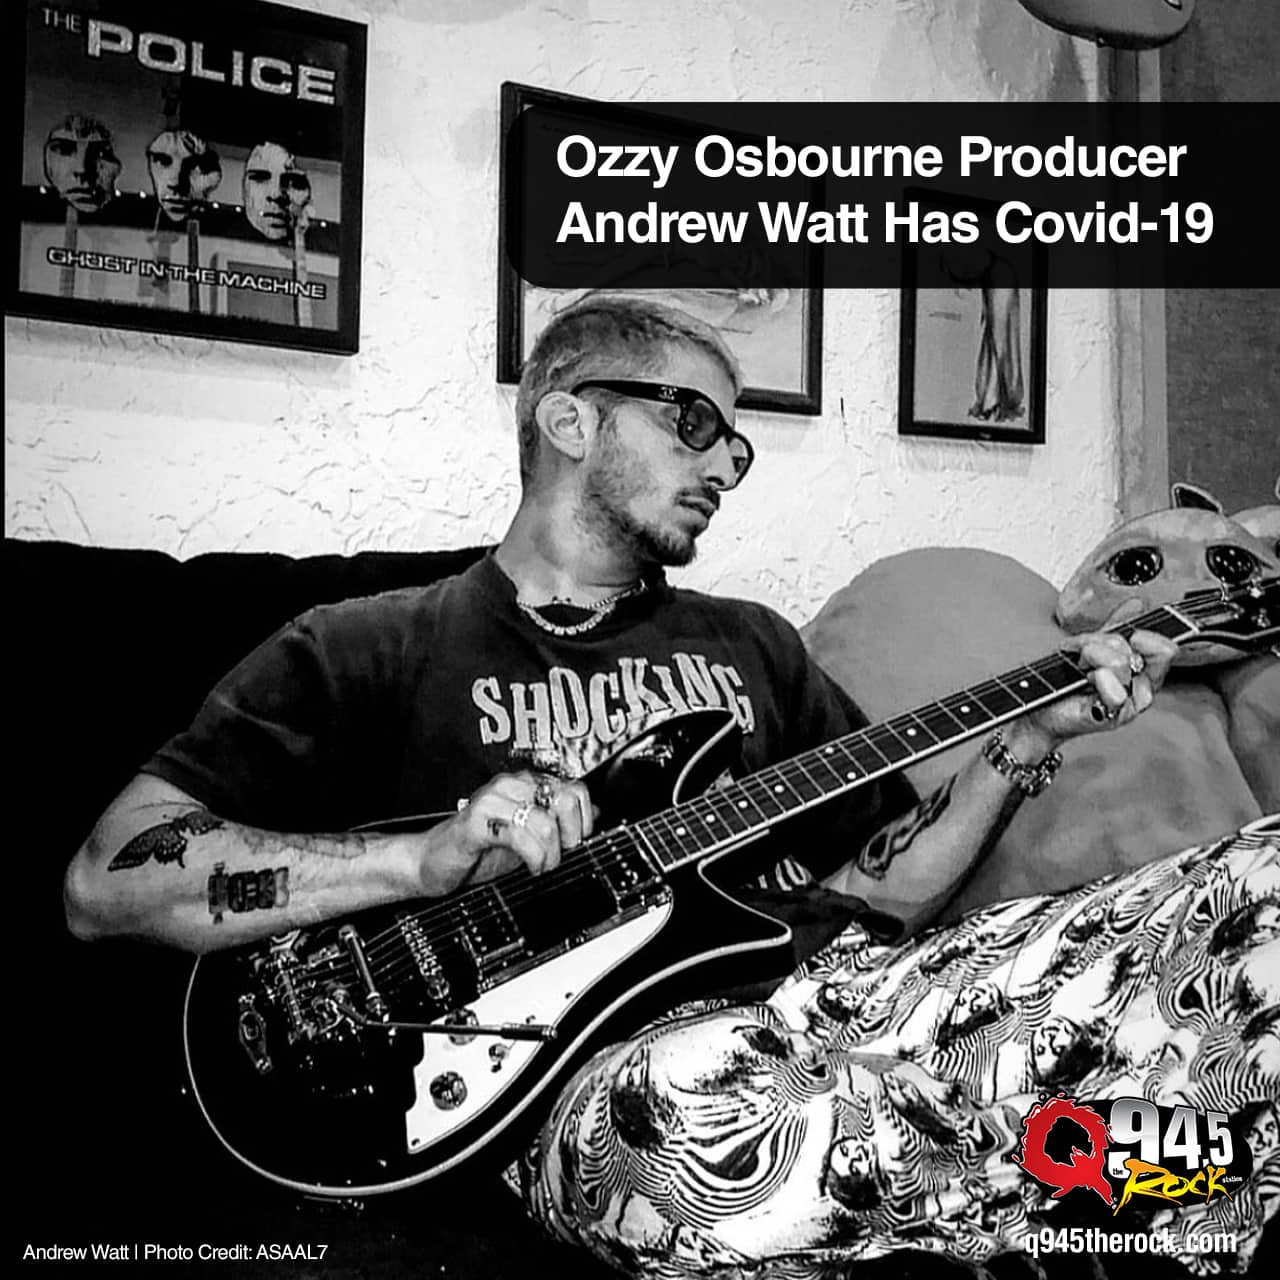 Ozzy Osbourne Producer Andrew Watt Has Covid-19